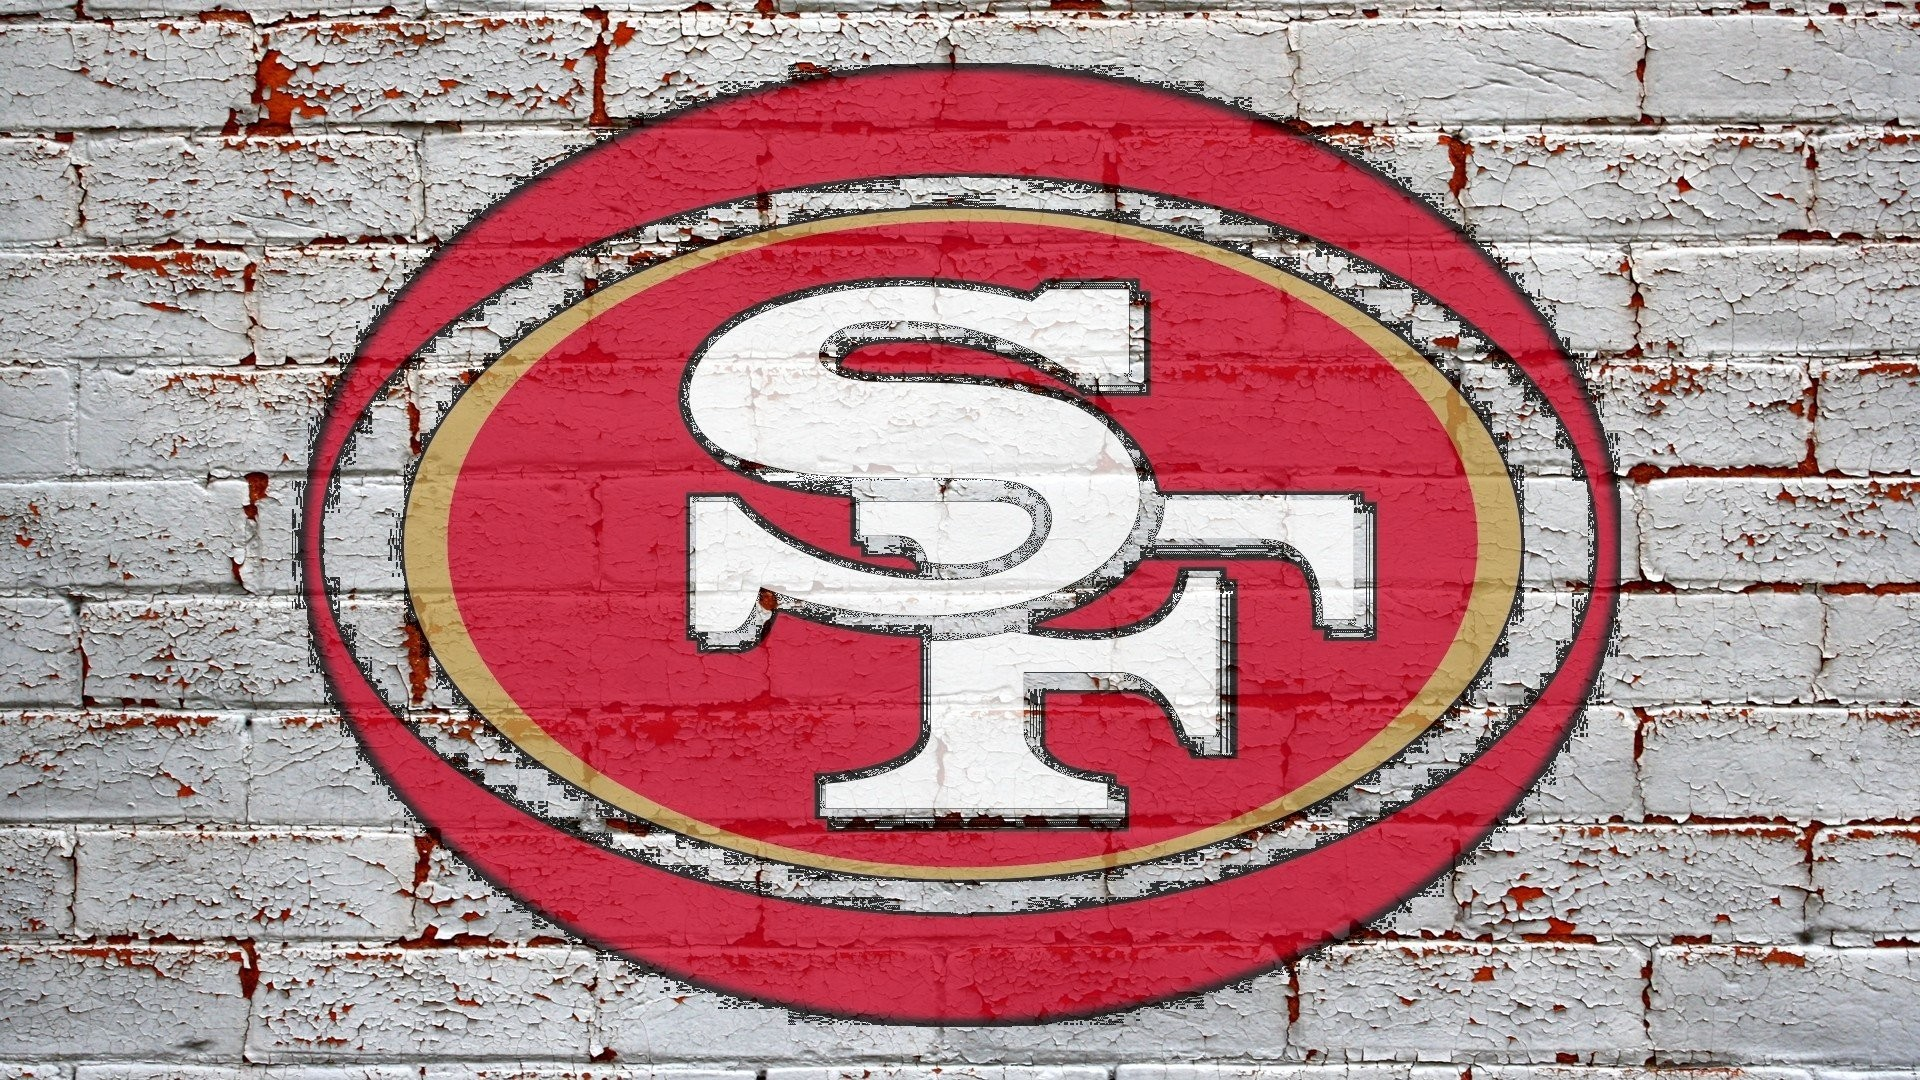 49ers wallpaper for iphone 6 65 images 1920x1080 cool 49ers backgrounds voltagebd Image collections